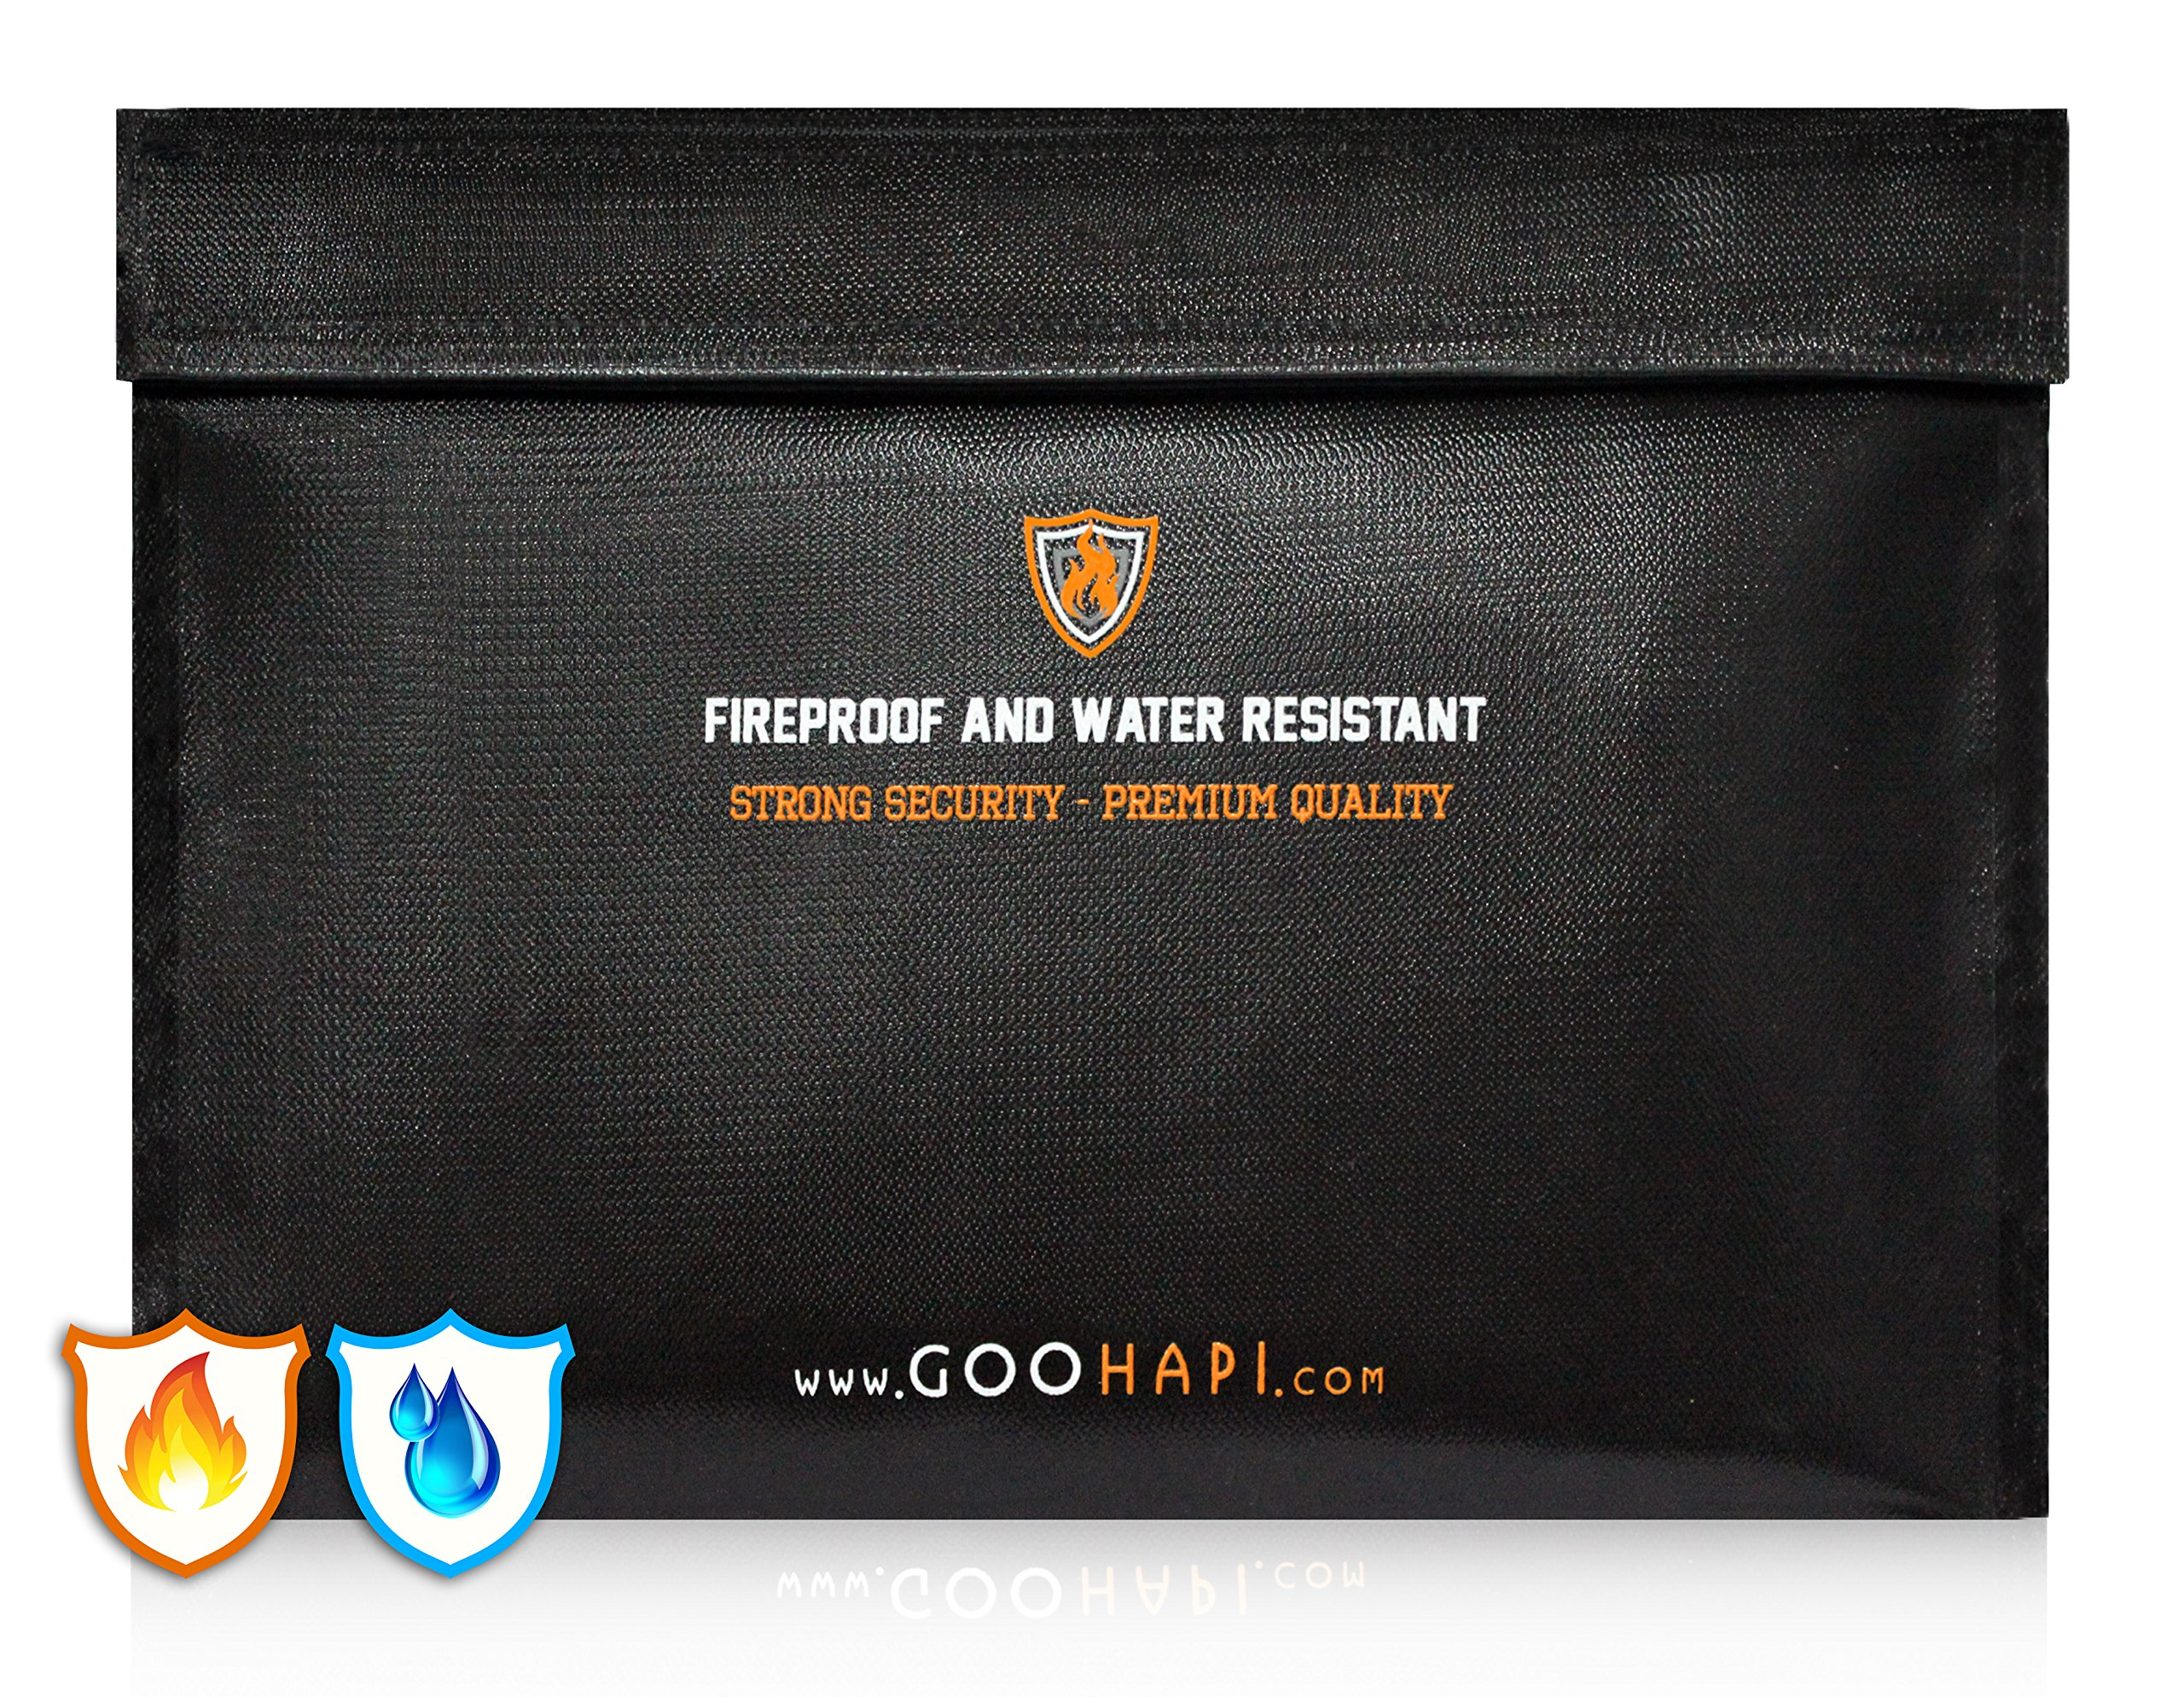 "Goohapi Premium Fireproof Bag (15.3""x11"") Fire Resistant Document Holder 